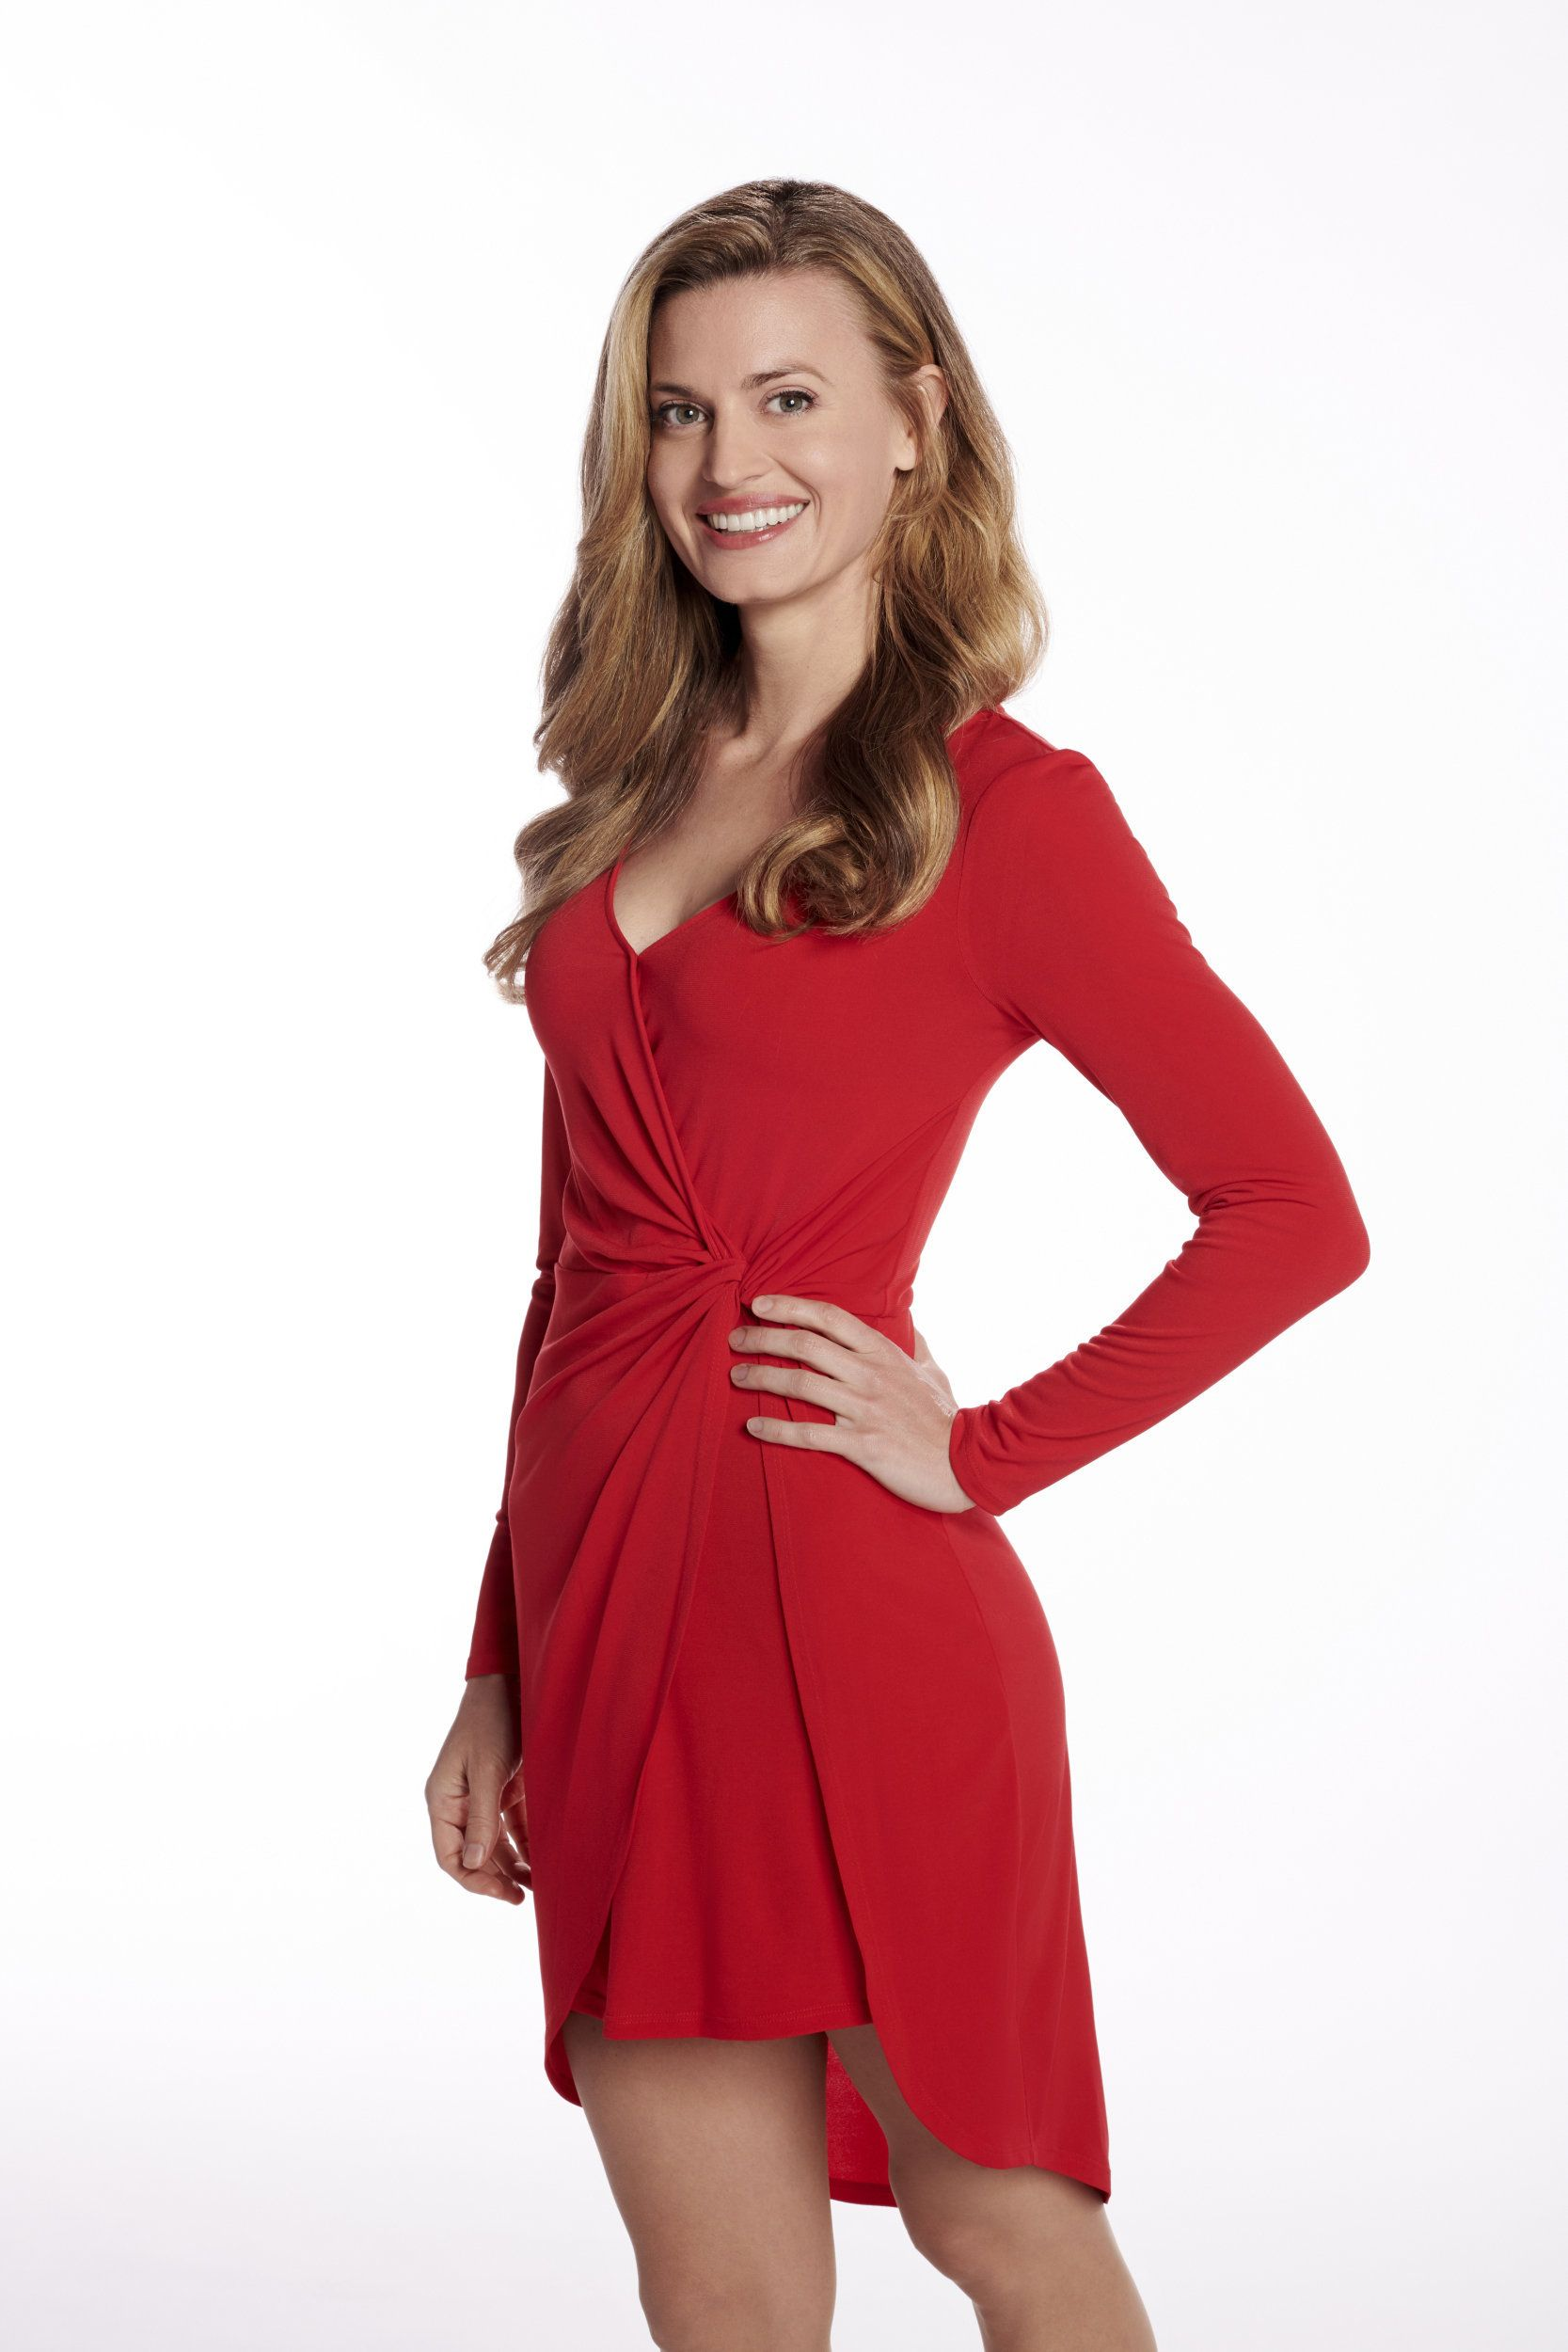 Learn more about the cast of the Hallmark Movies and